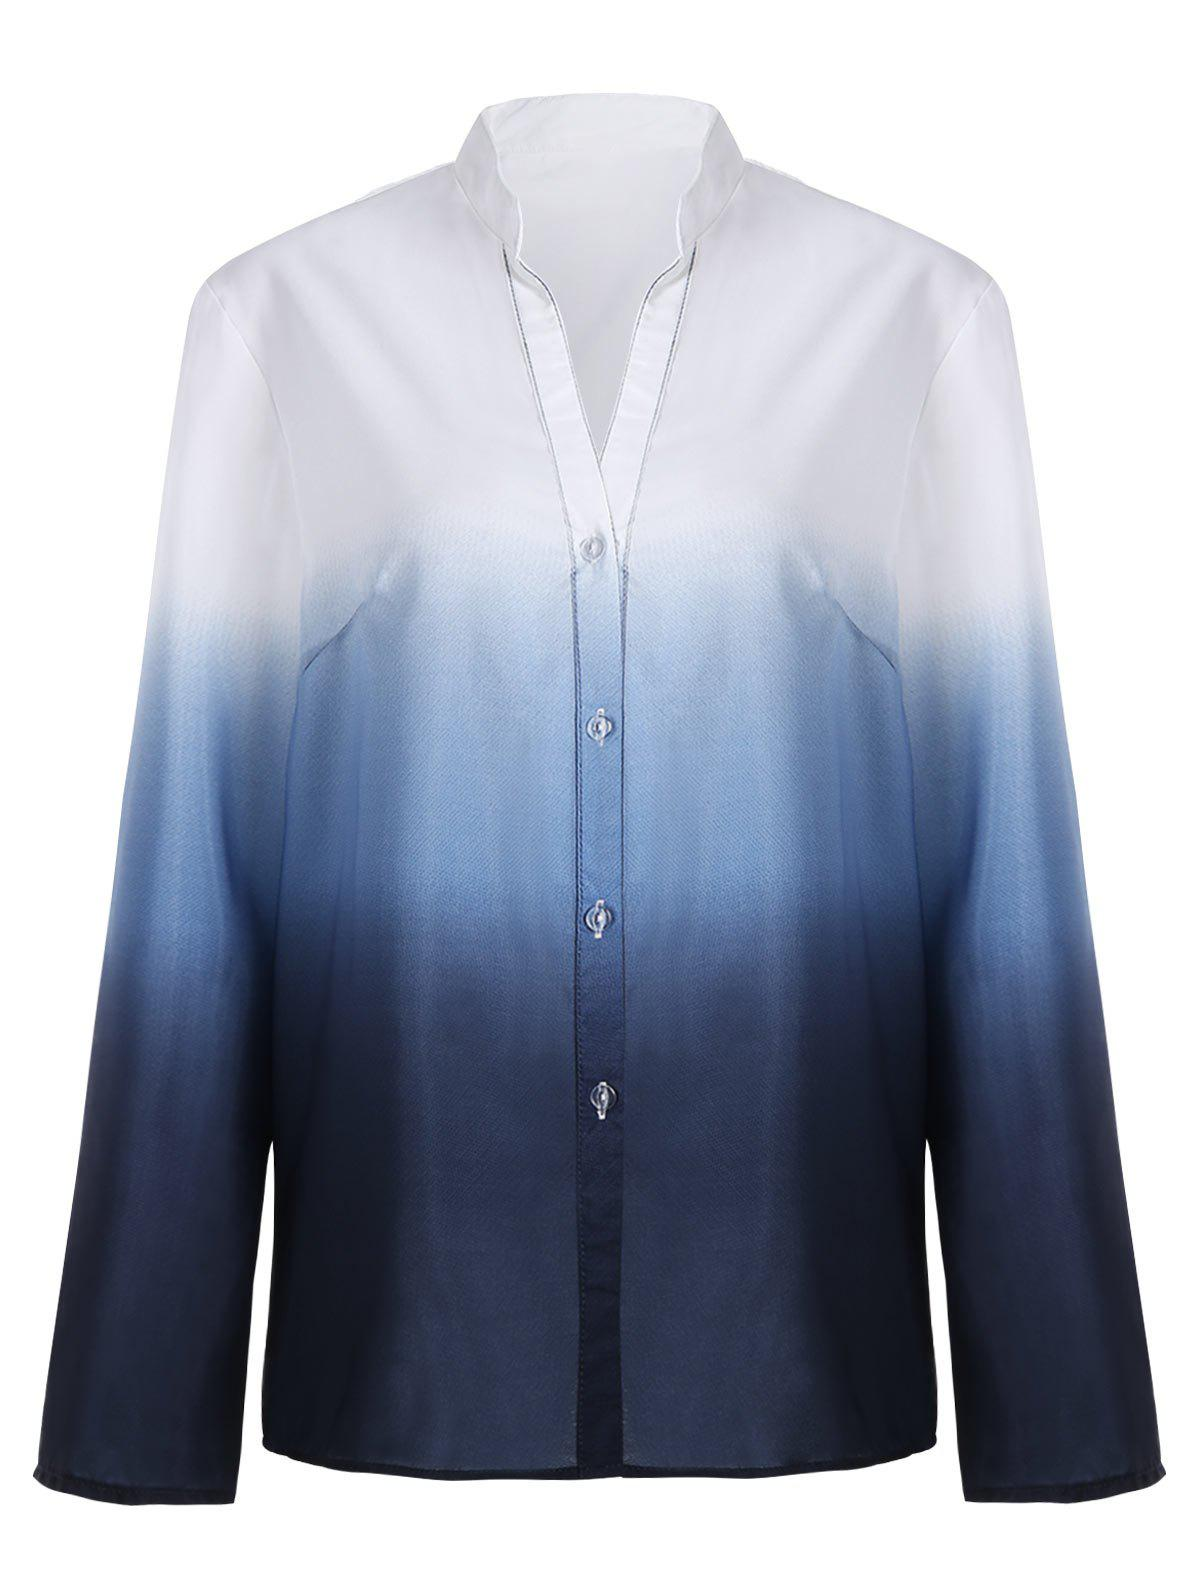 Ombre Button Up Long Sleeve Blouse - CADETBLUE XL